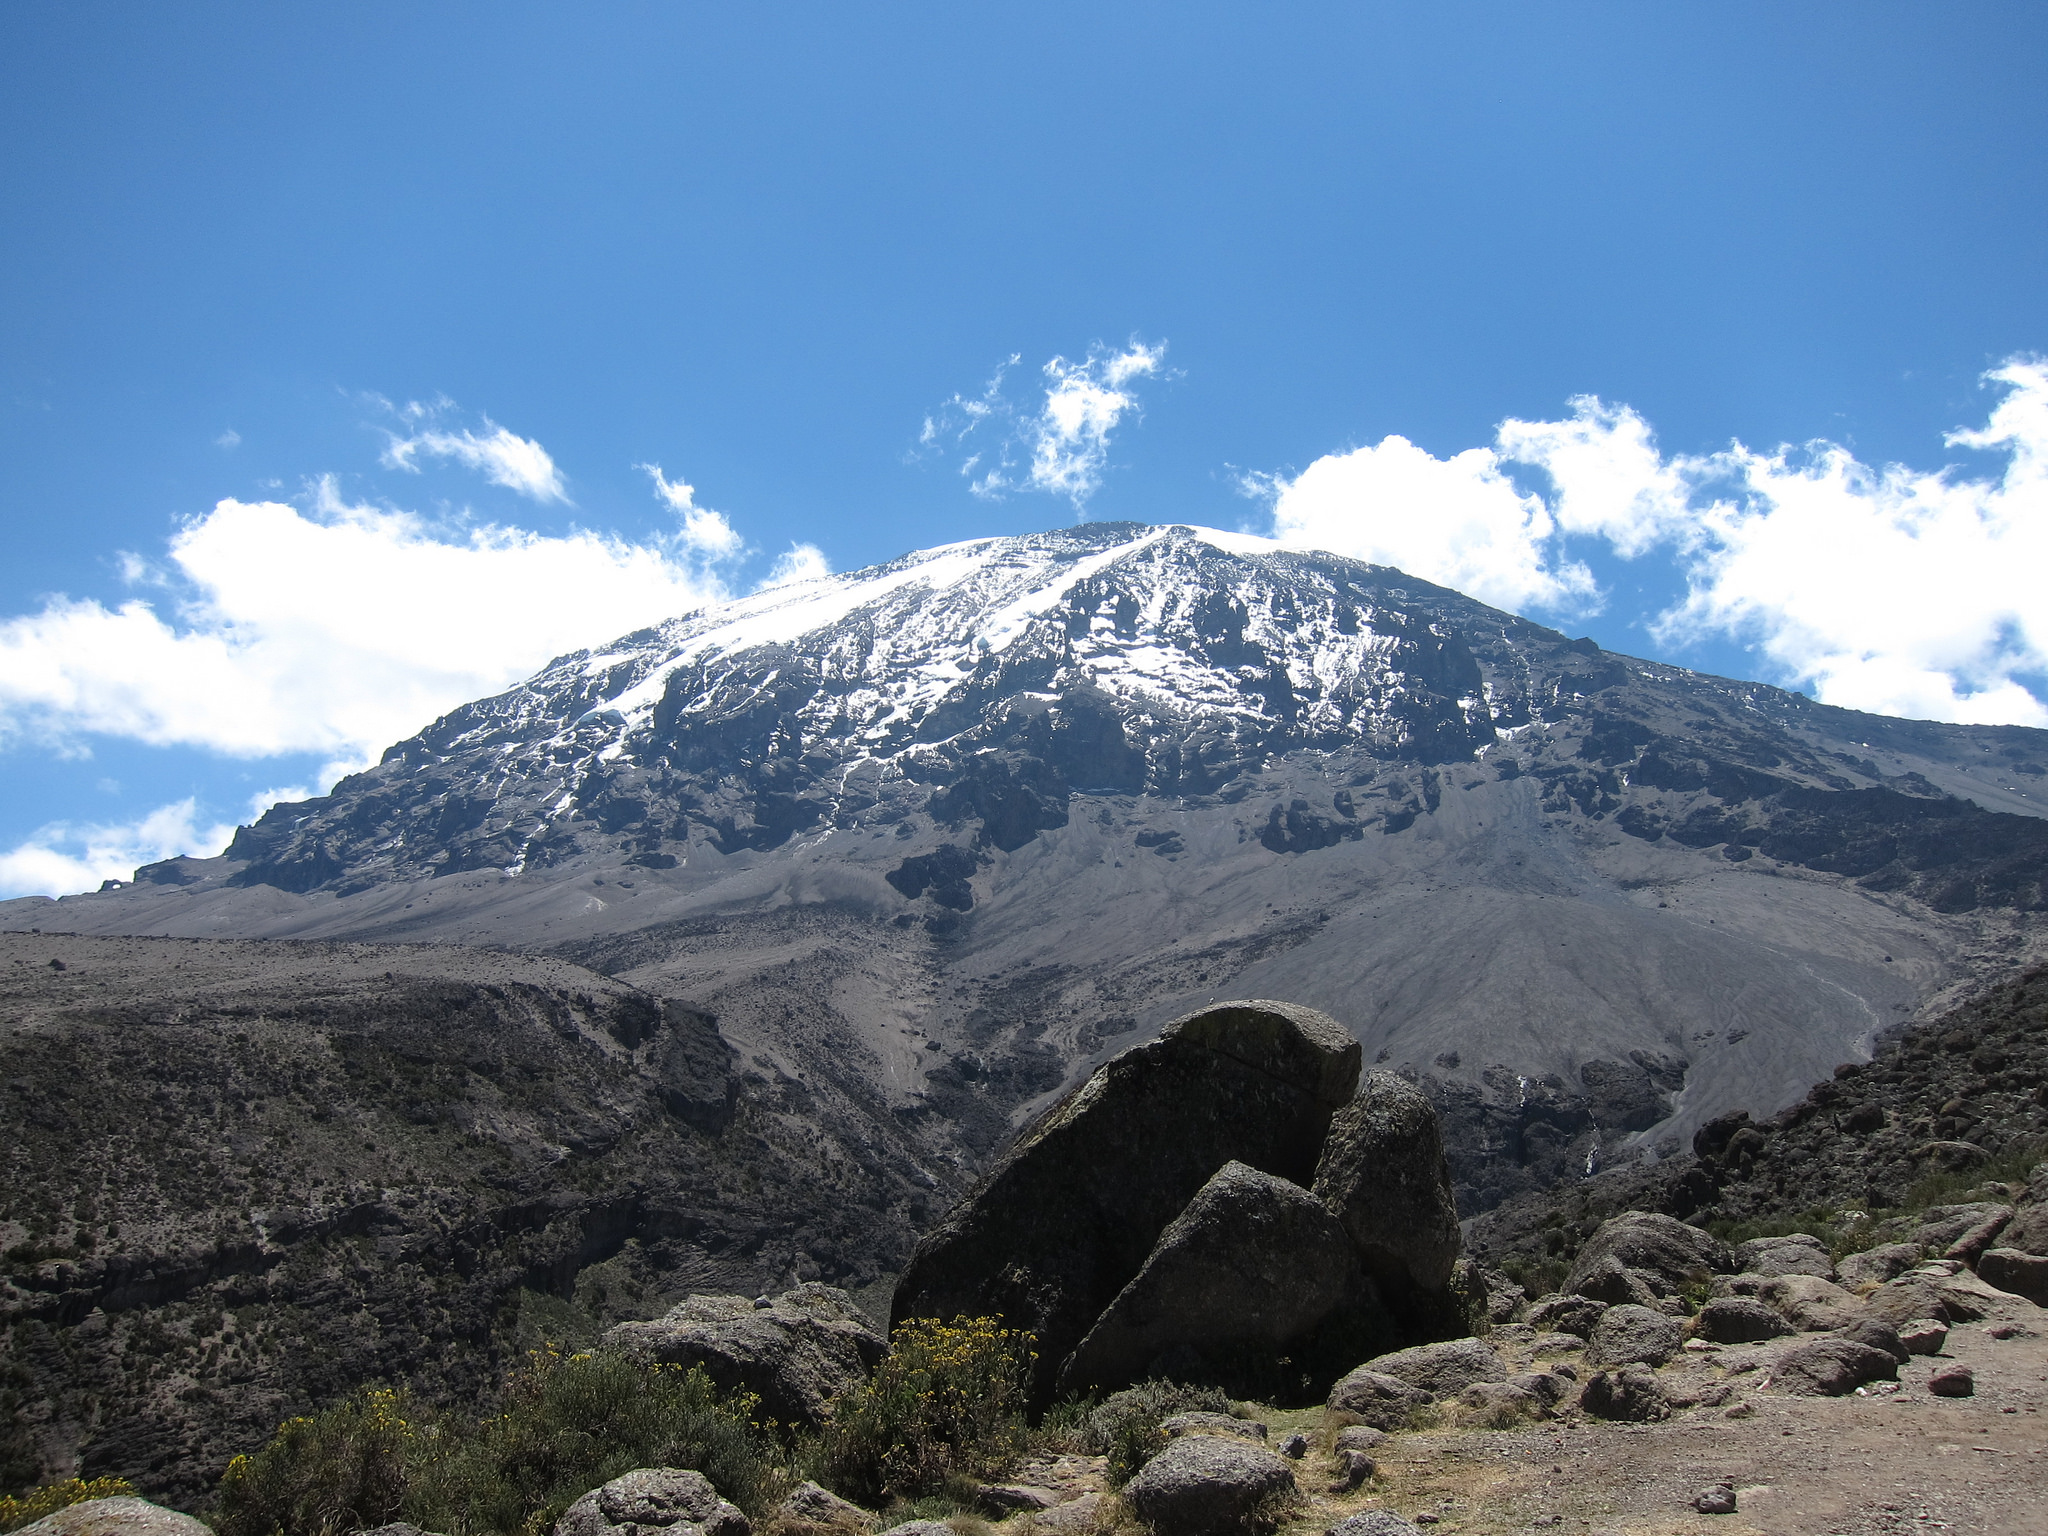 Free download high resolution image - free image free photo free stock image public domain picture -Kilimanjaro mountain Tanzania snow capped under cloudy blue skies